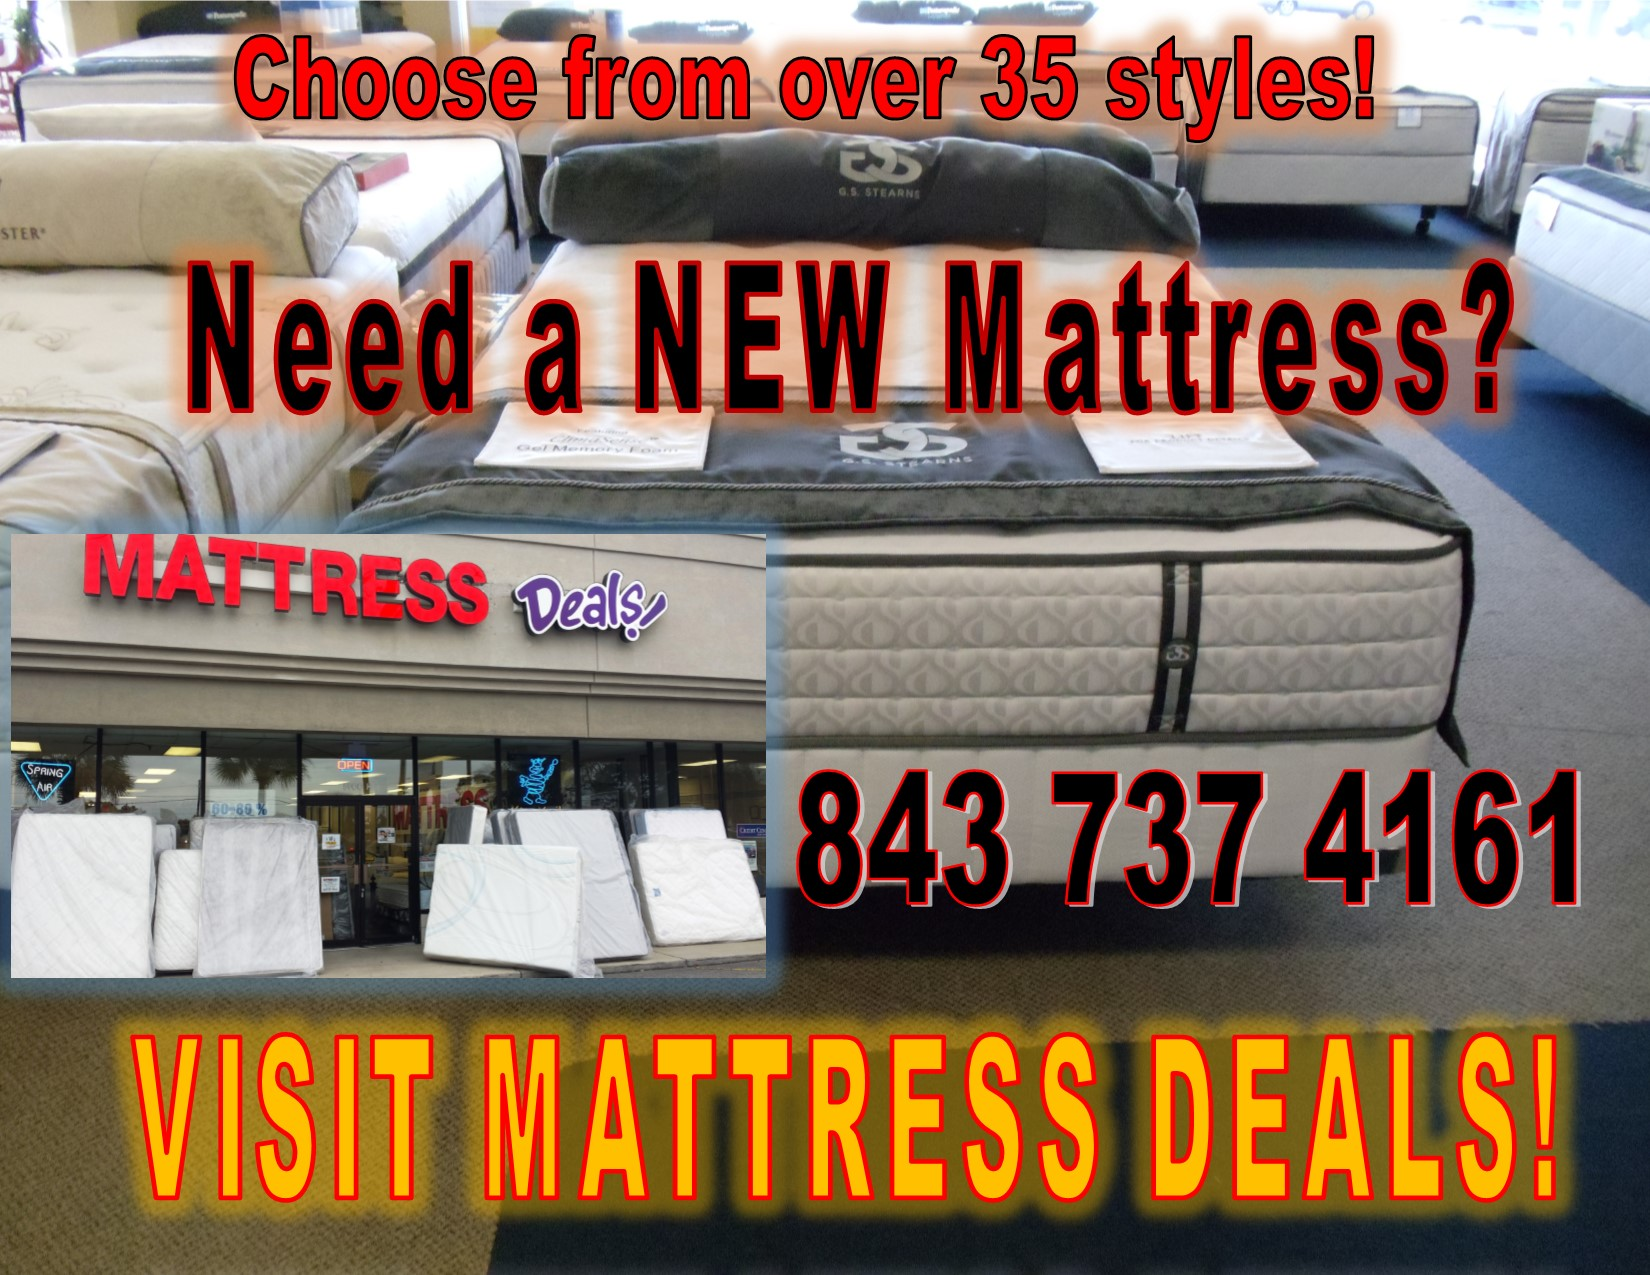 Mattress Deals image 90